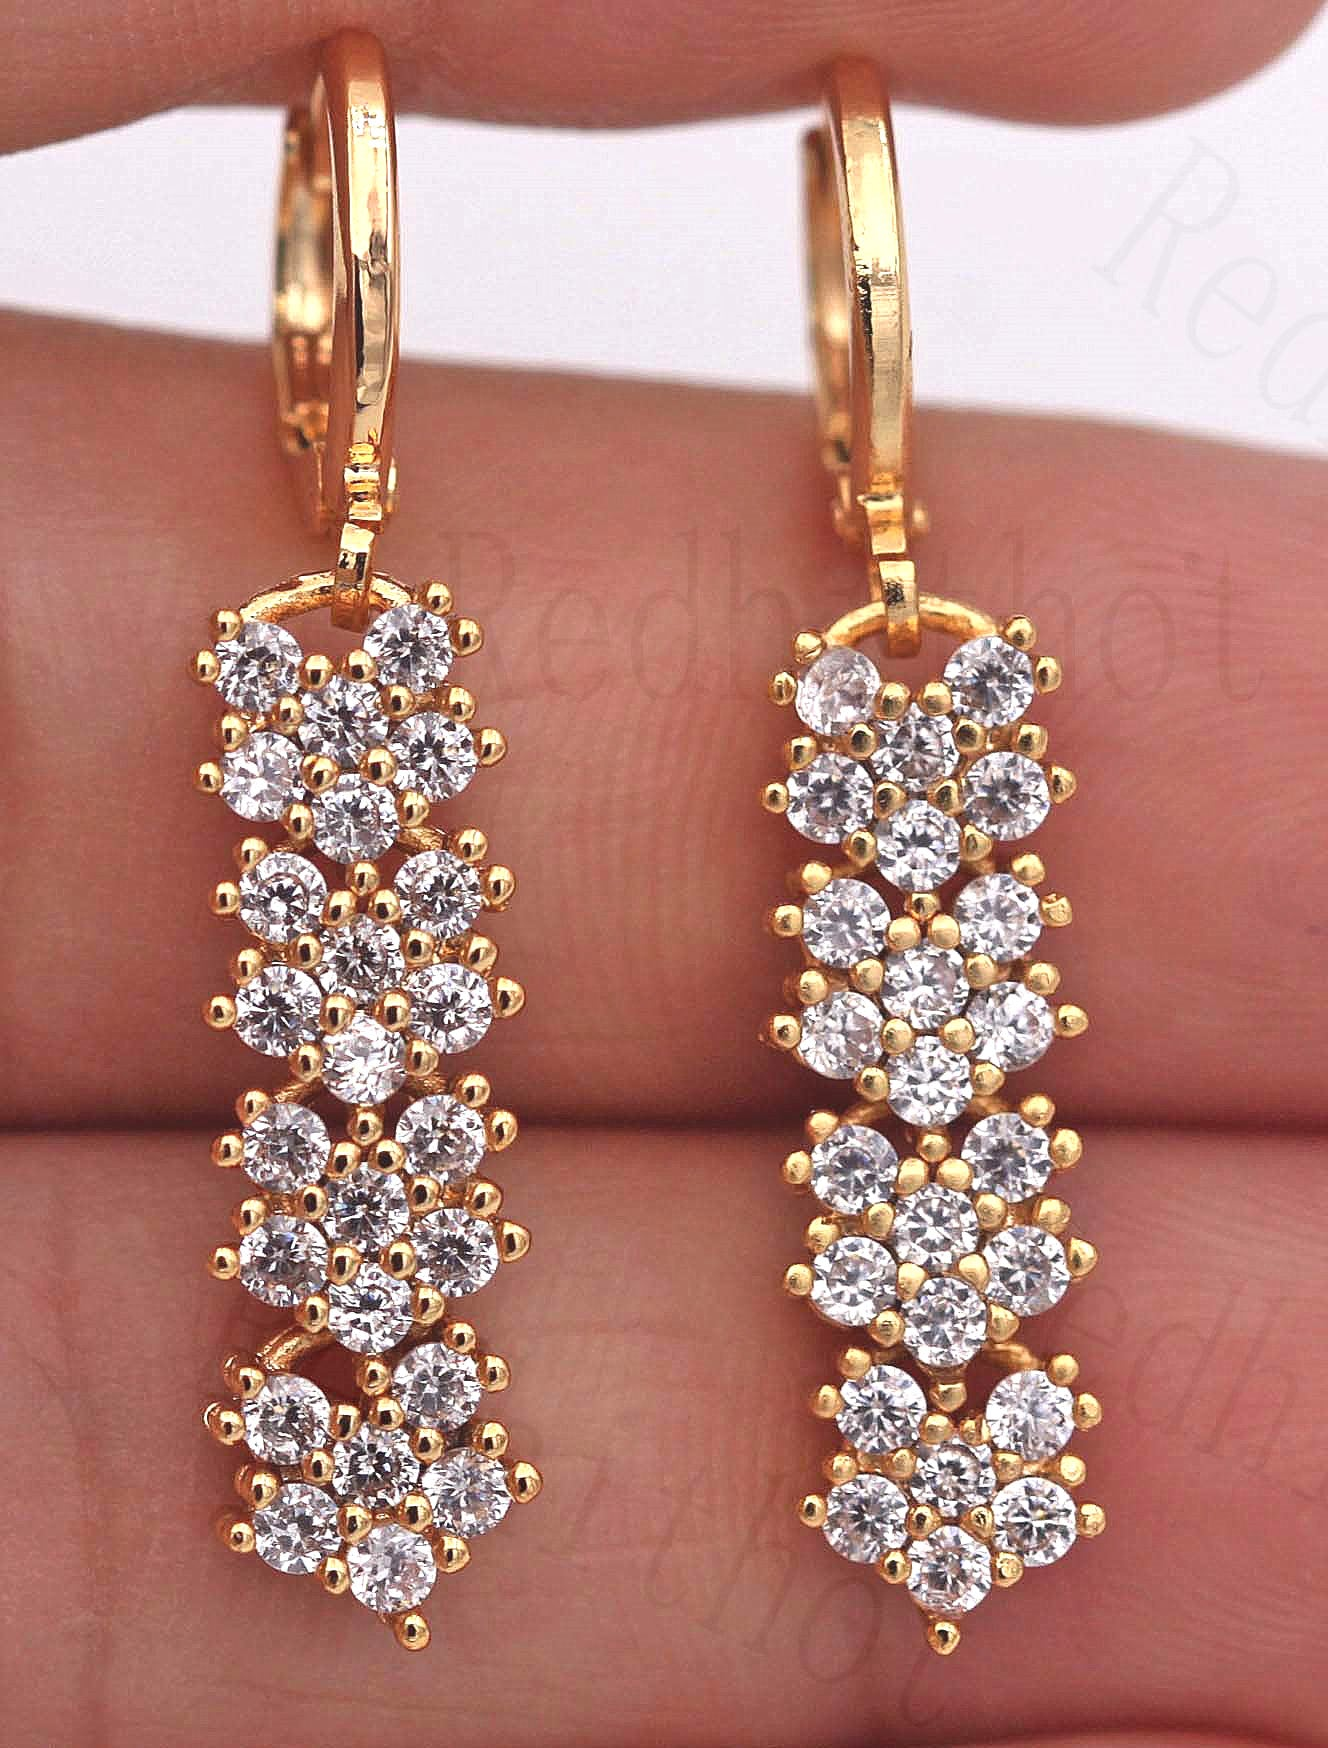 New Bohemian Earrings for Women Gold Filled Flower Zircon Dangle Drop Earrings Luxury Jewelry for Party Wedding Anniversary Gift